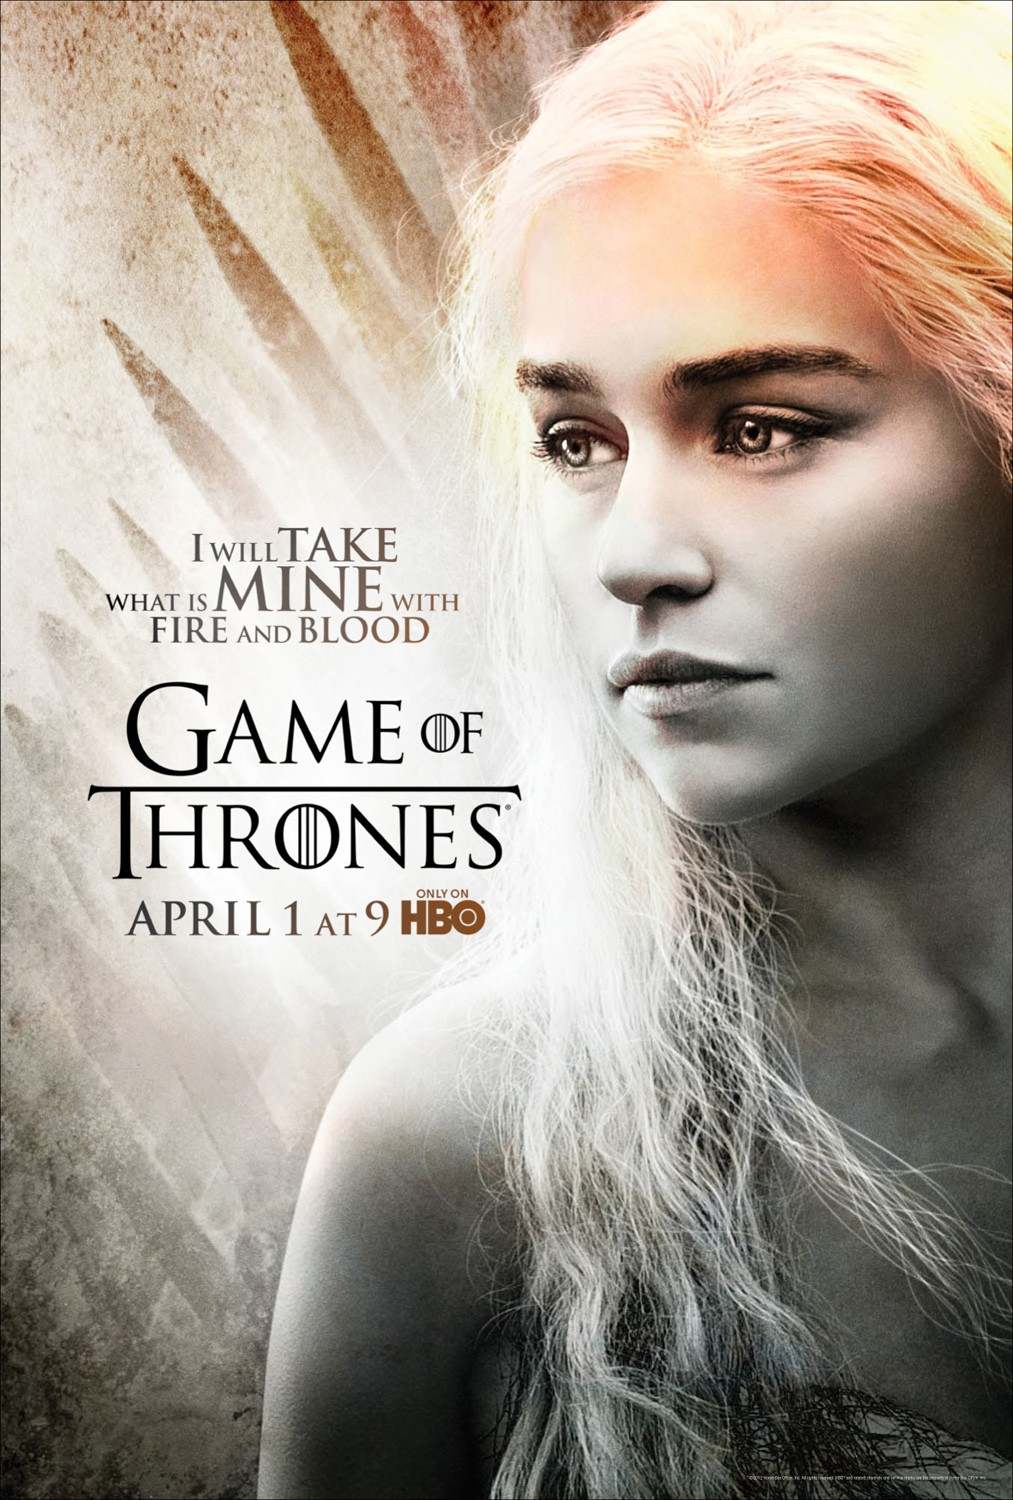 Game of Thrones S02E09 720p BluRay x264 AAC Hindi PGS Subtitle 450MB